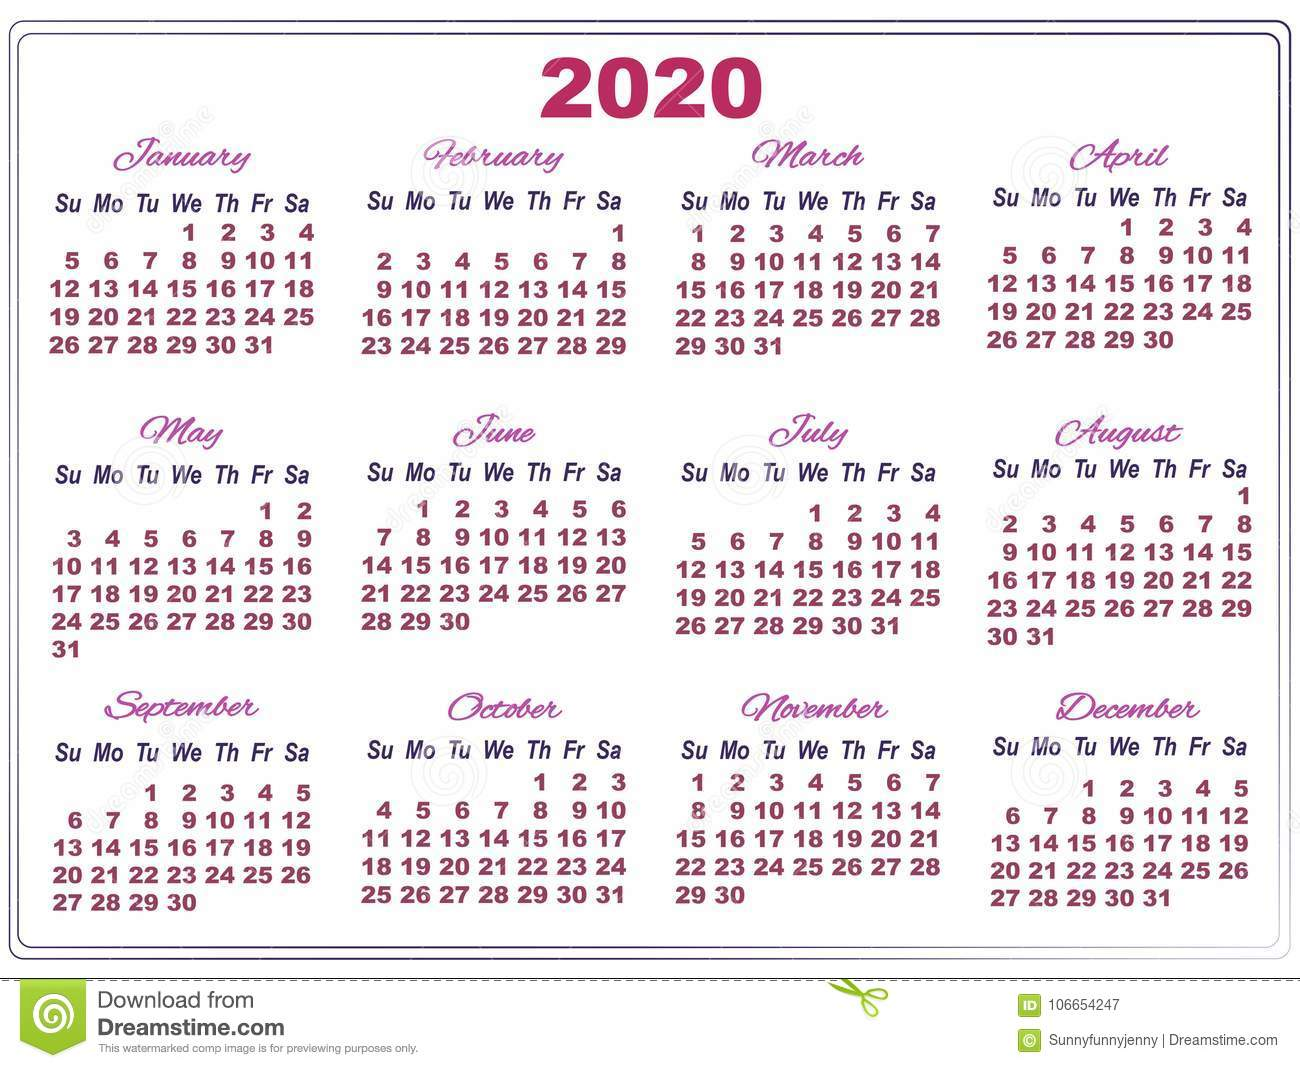 Temple Calendar 2020 2020 Calendar With Big Numbers Stock Vector   Illustration of